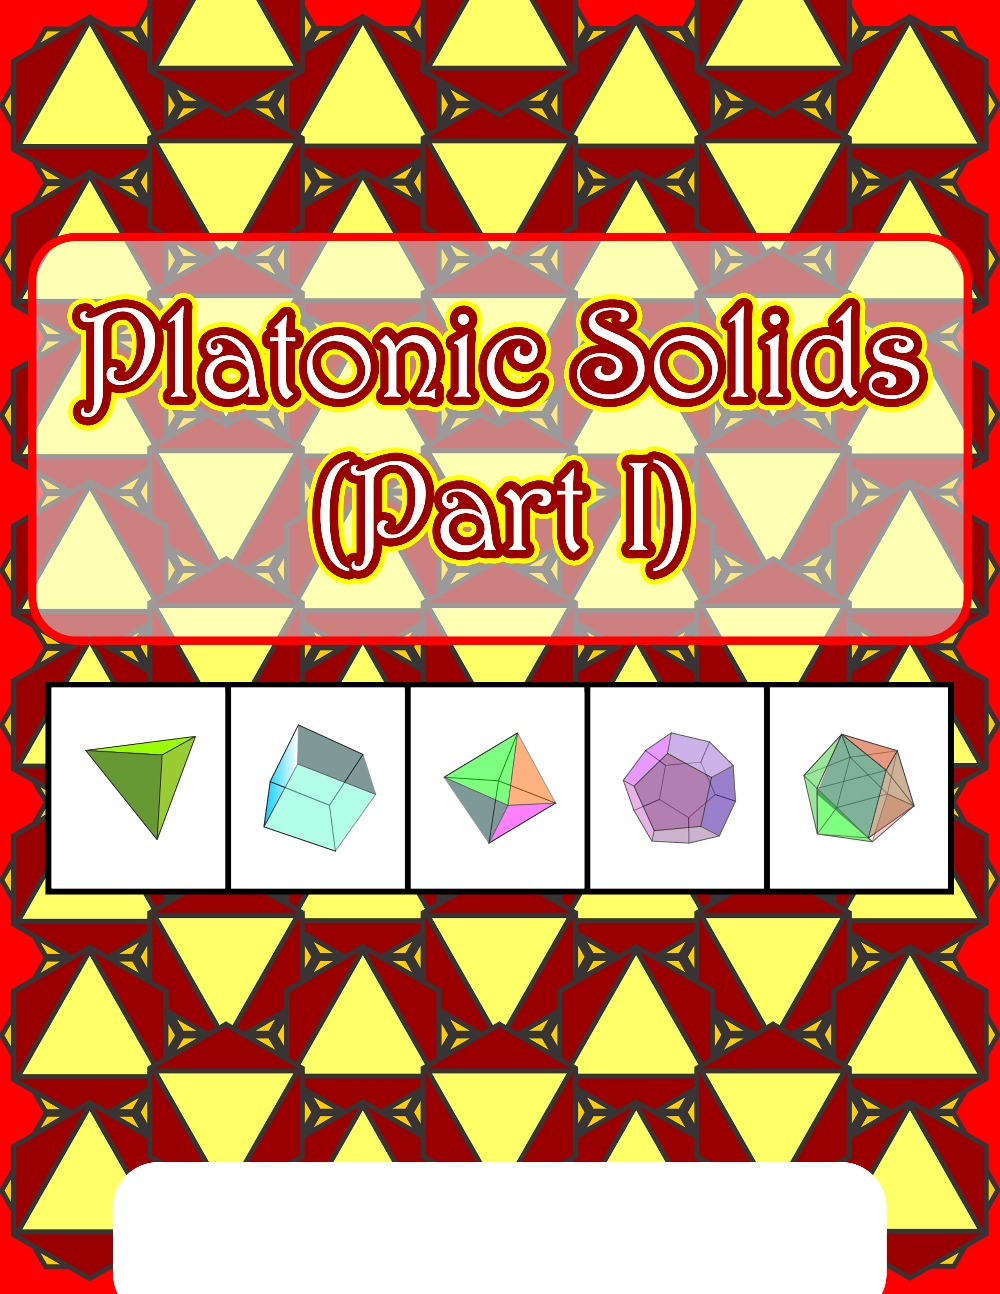 Platonic Solids (Part I)